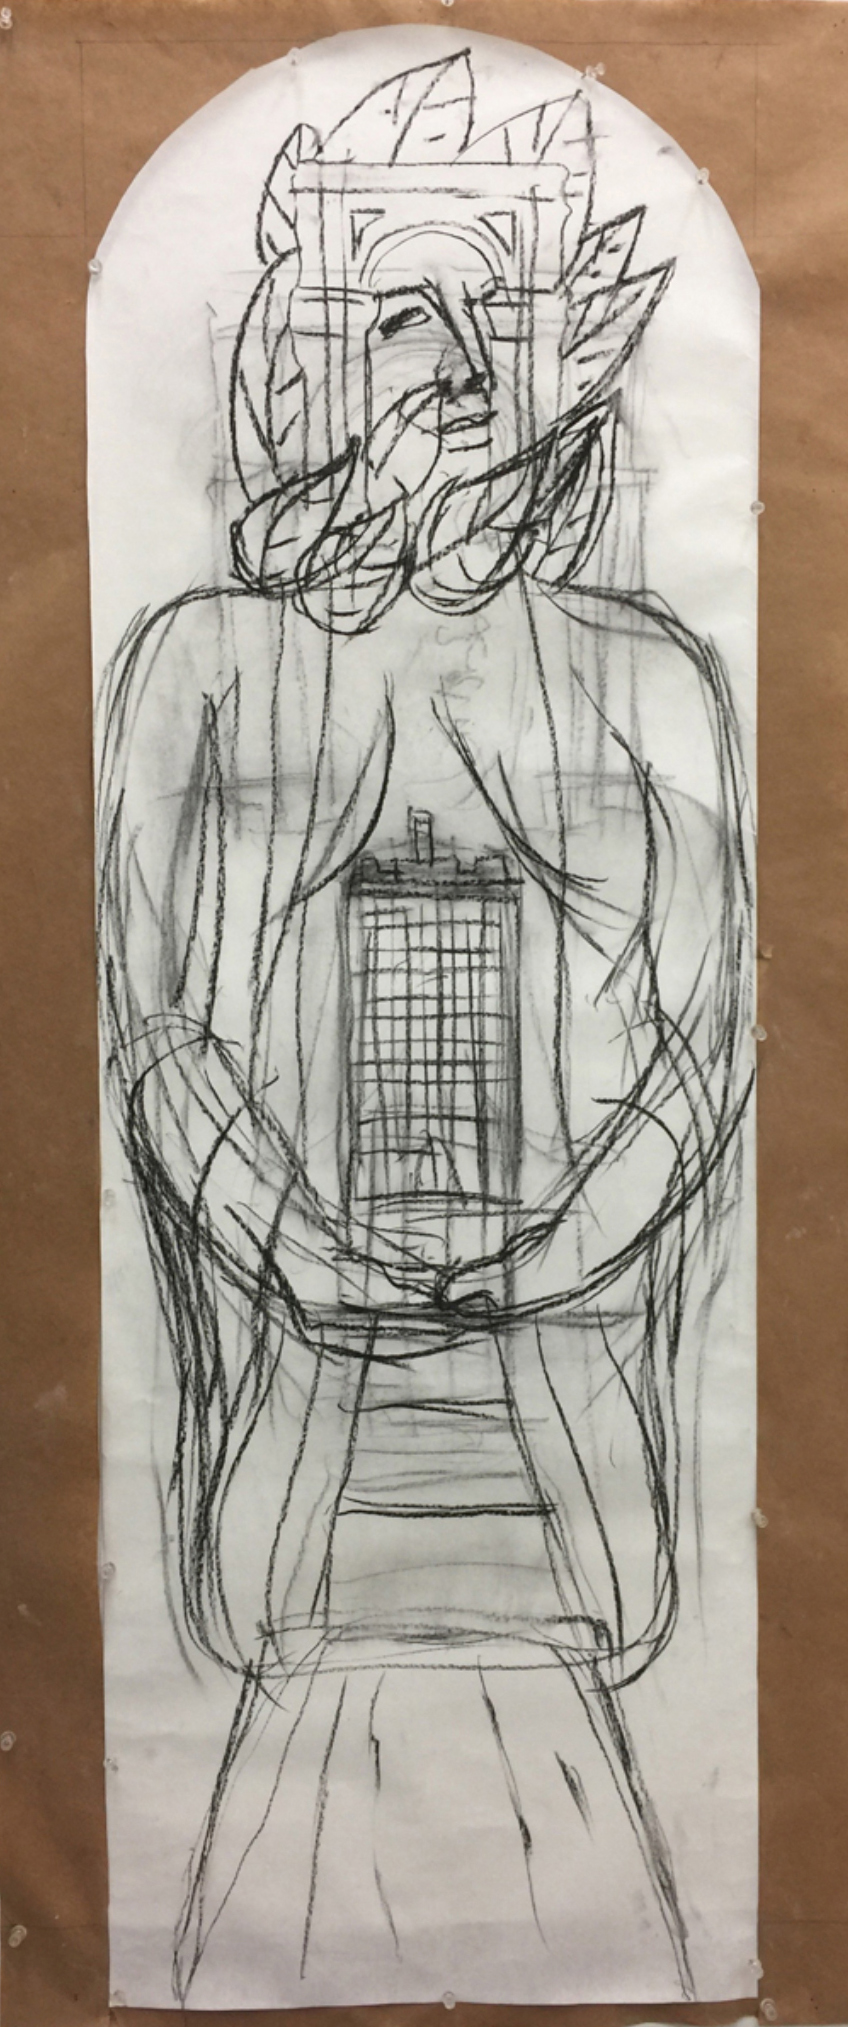 Actual scale sketch for the piece based on the George Washington Hotel building. Photo courtesy of the artist.